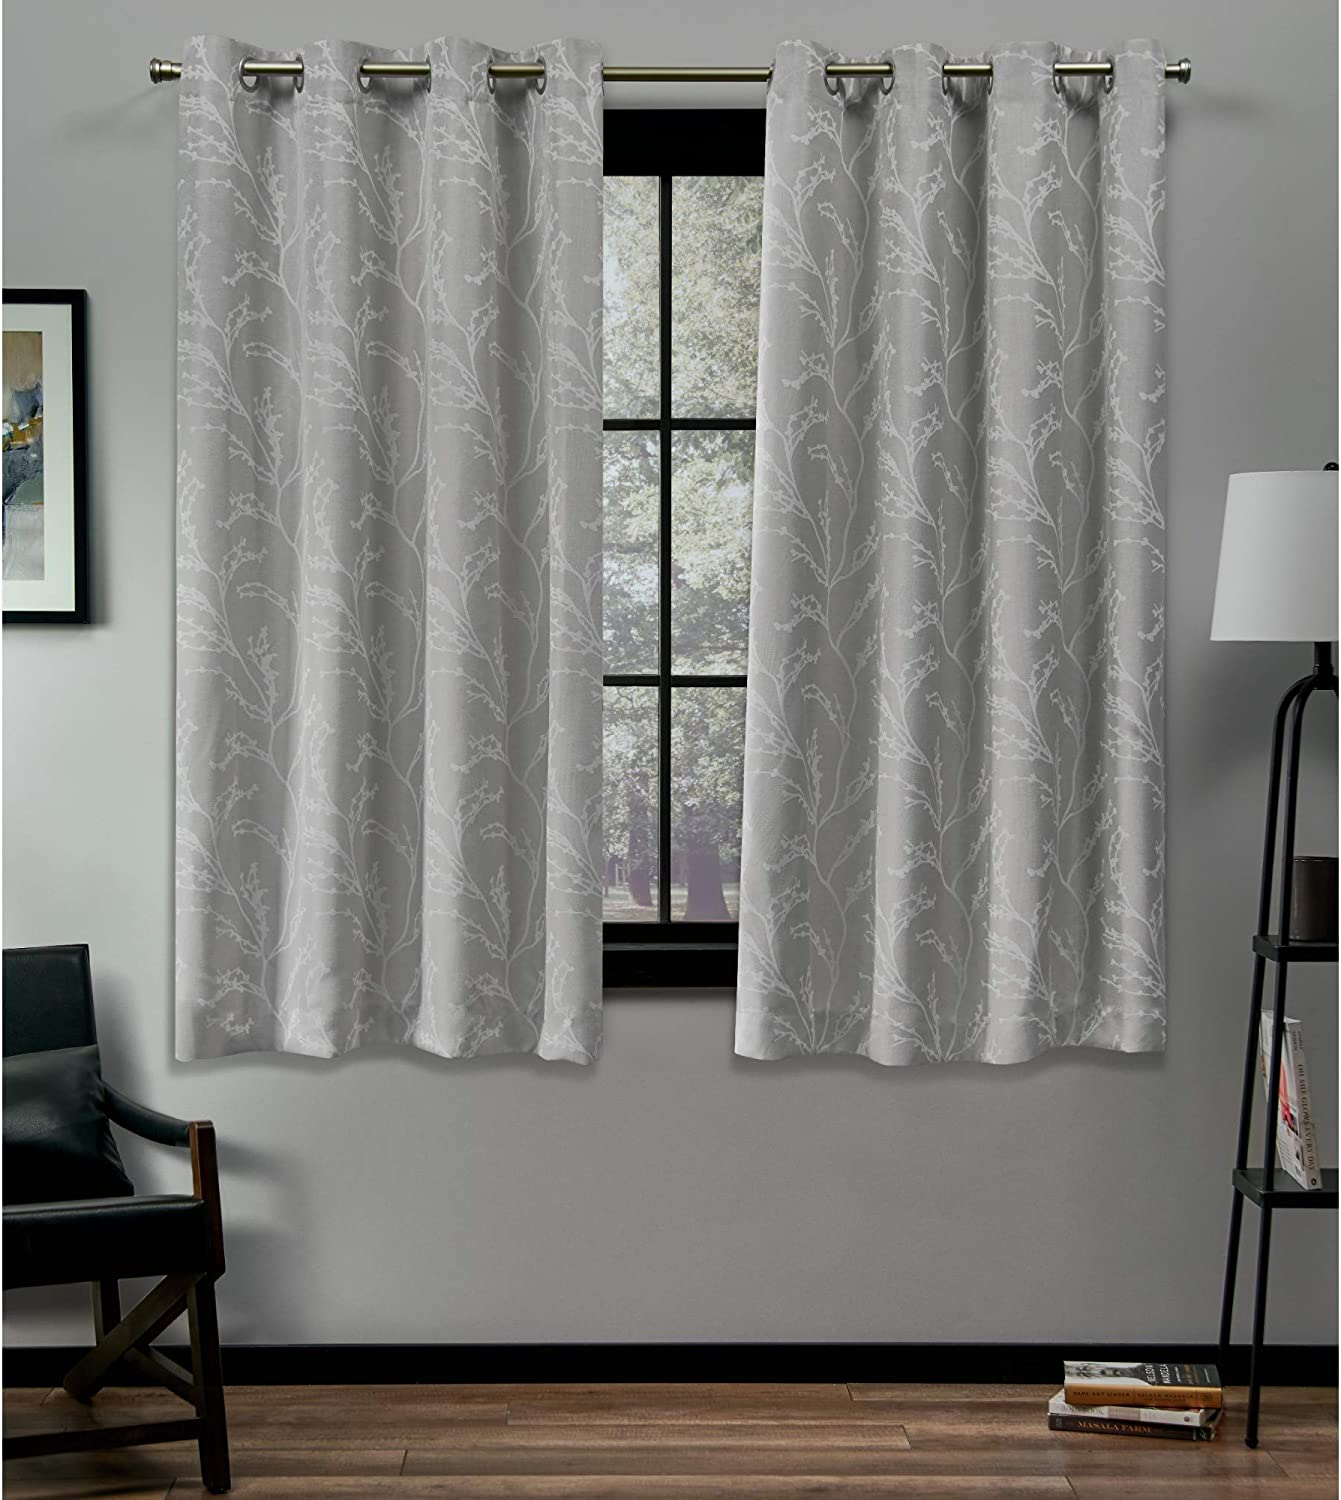 Exclusive Home Curtains Kilberry Panel Pair, 52 x 63 , Dove Grey